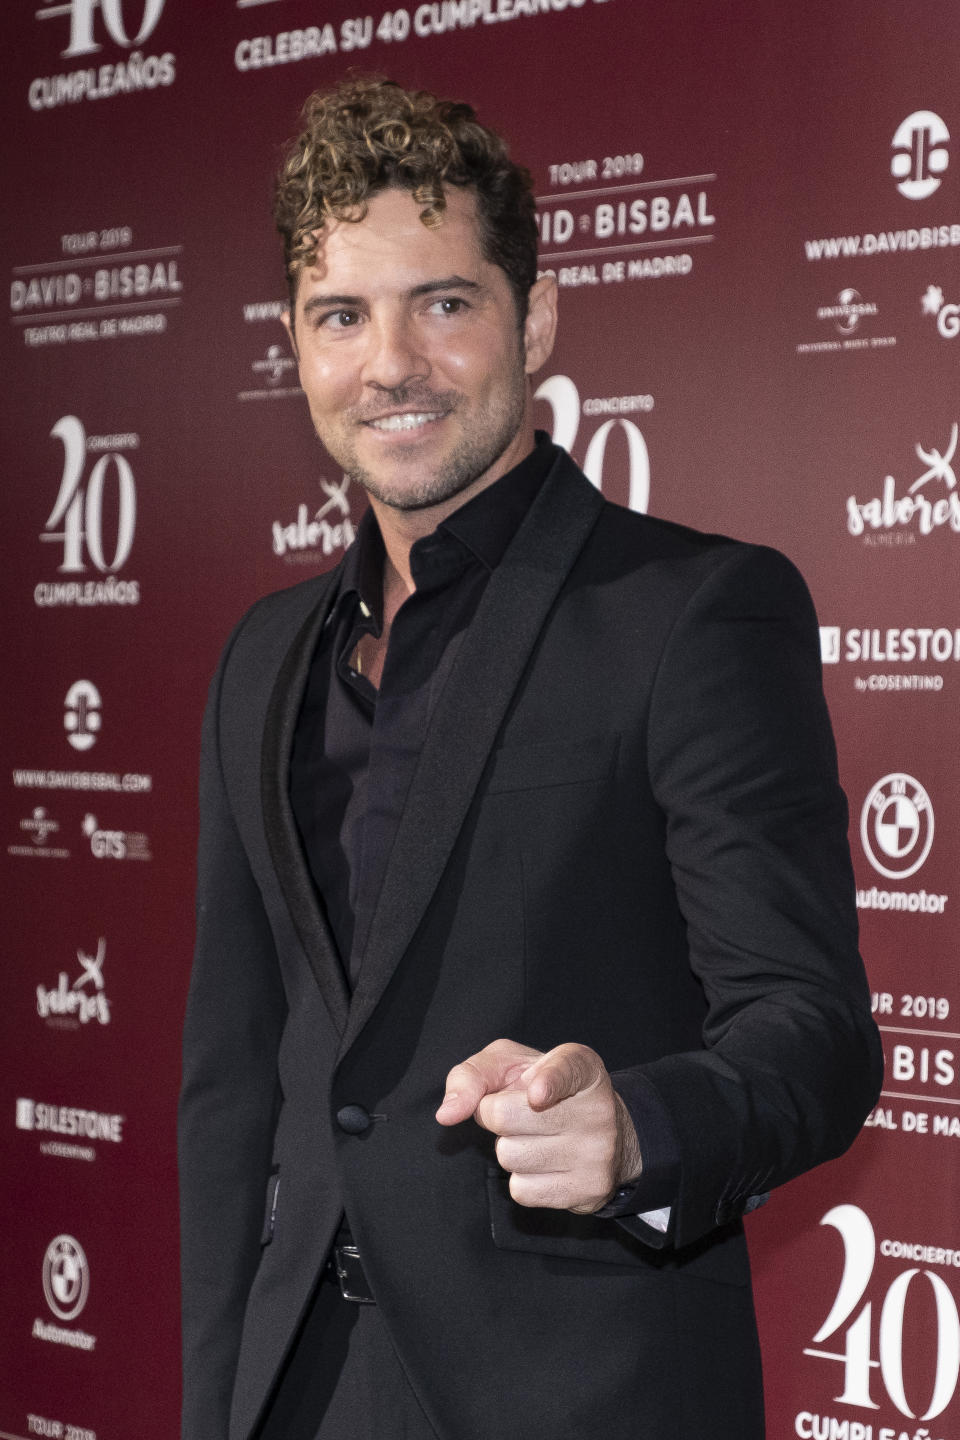 David Bisbal attends a photocall before David Bisbal concert at Royal Theatre on June 05, 2019 in Madrid, Spain. David Bisbal has organized a concert to celebrate his 40th birthday (Photo by Oscar Gonzalez/NurPhoto via Getty Images)